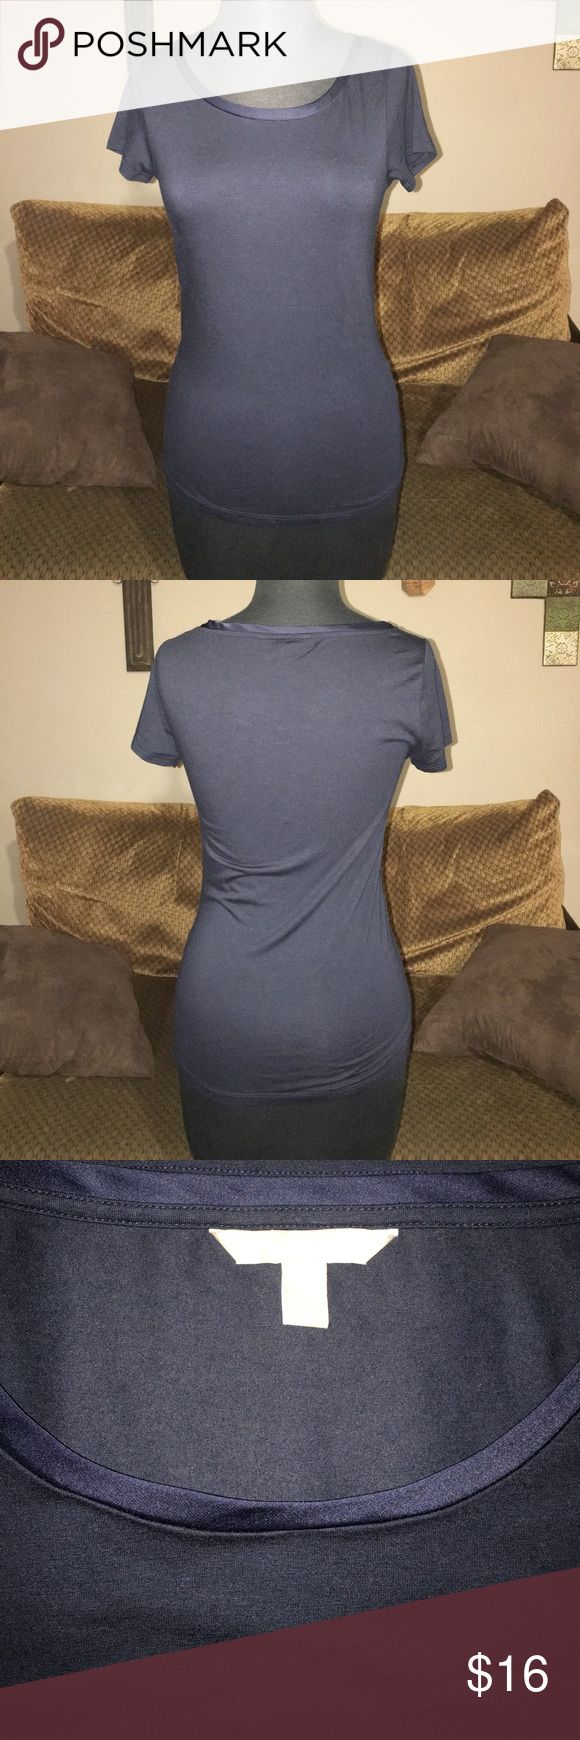 """Banana Republic Tshirt Super cute deep navy color Banana Republic Tshirt. Has a cute satin trim on the neckline to add just a little pizazz. Size small measures 16"""" armpit to armpit and 24"""" long from shoulder to bottom laying flat Banana Republic Tops Tees - Short Sleeve"""